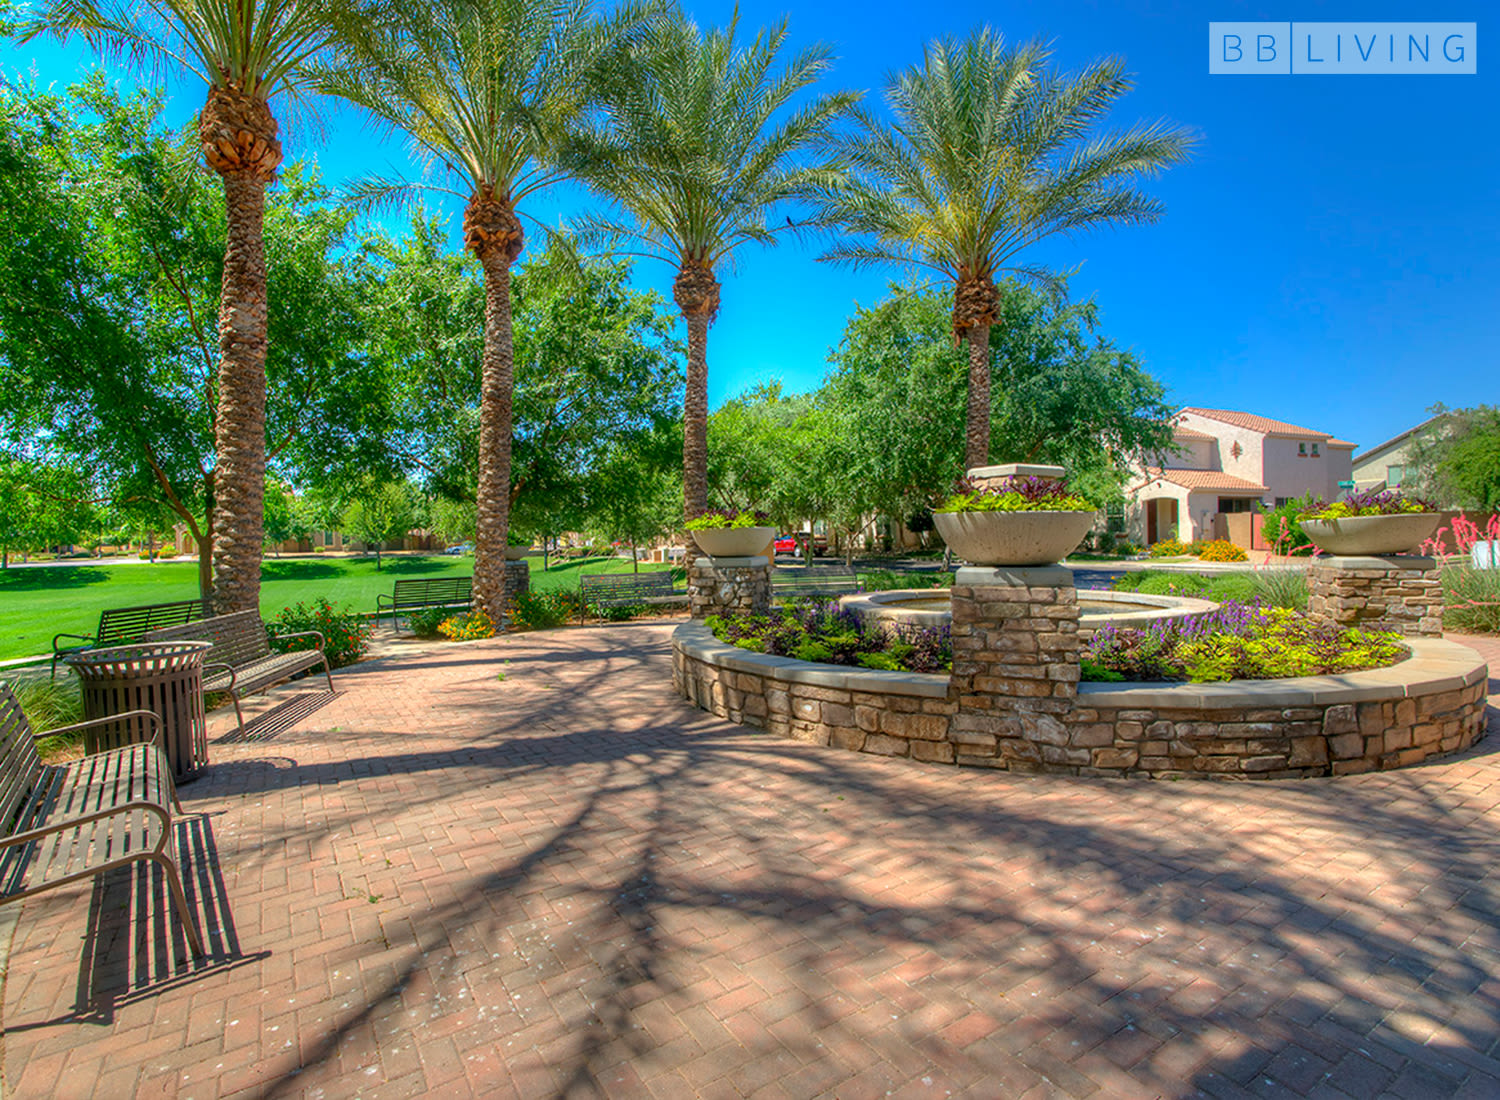 BB Living at Higley Park apartments in Gilbert, Arizona